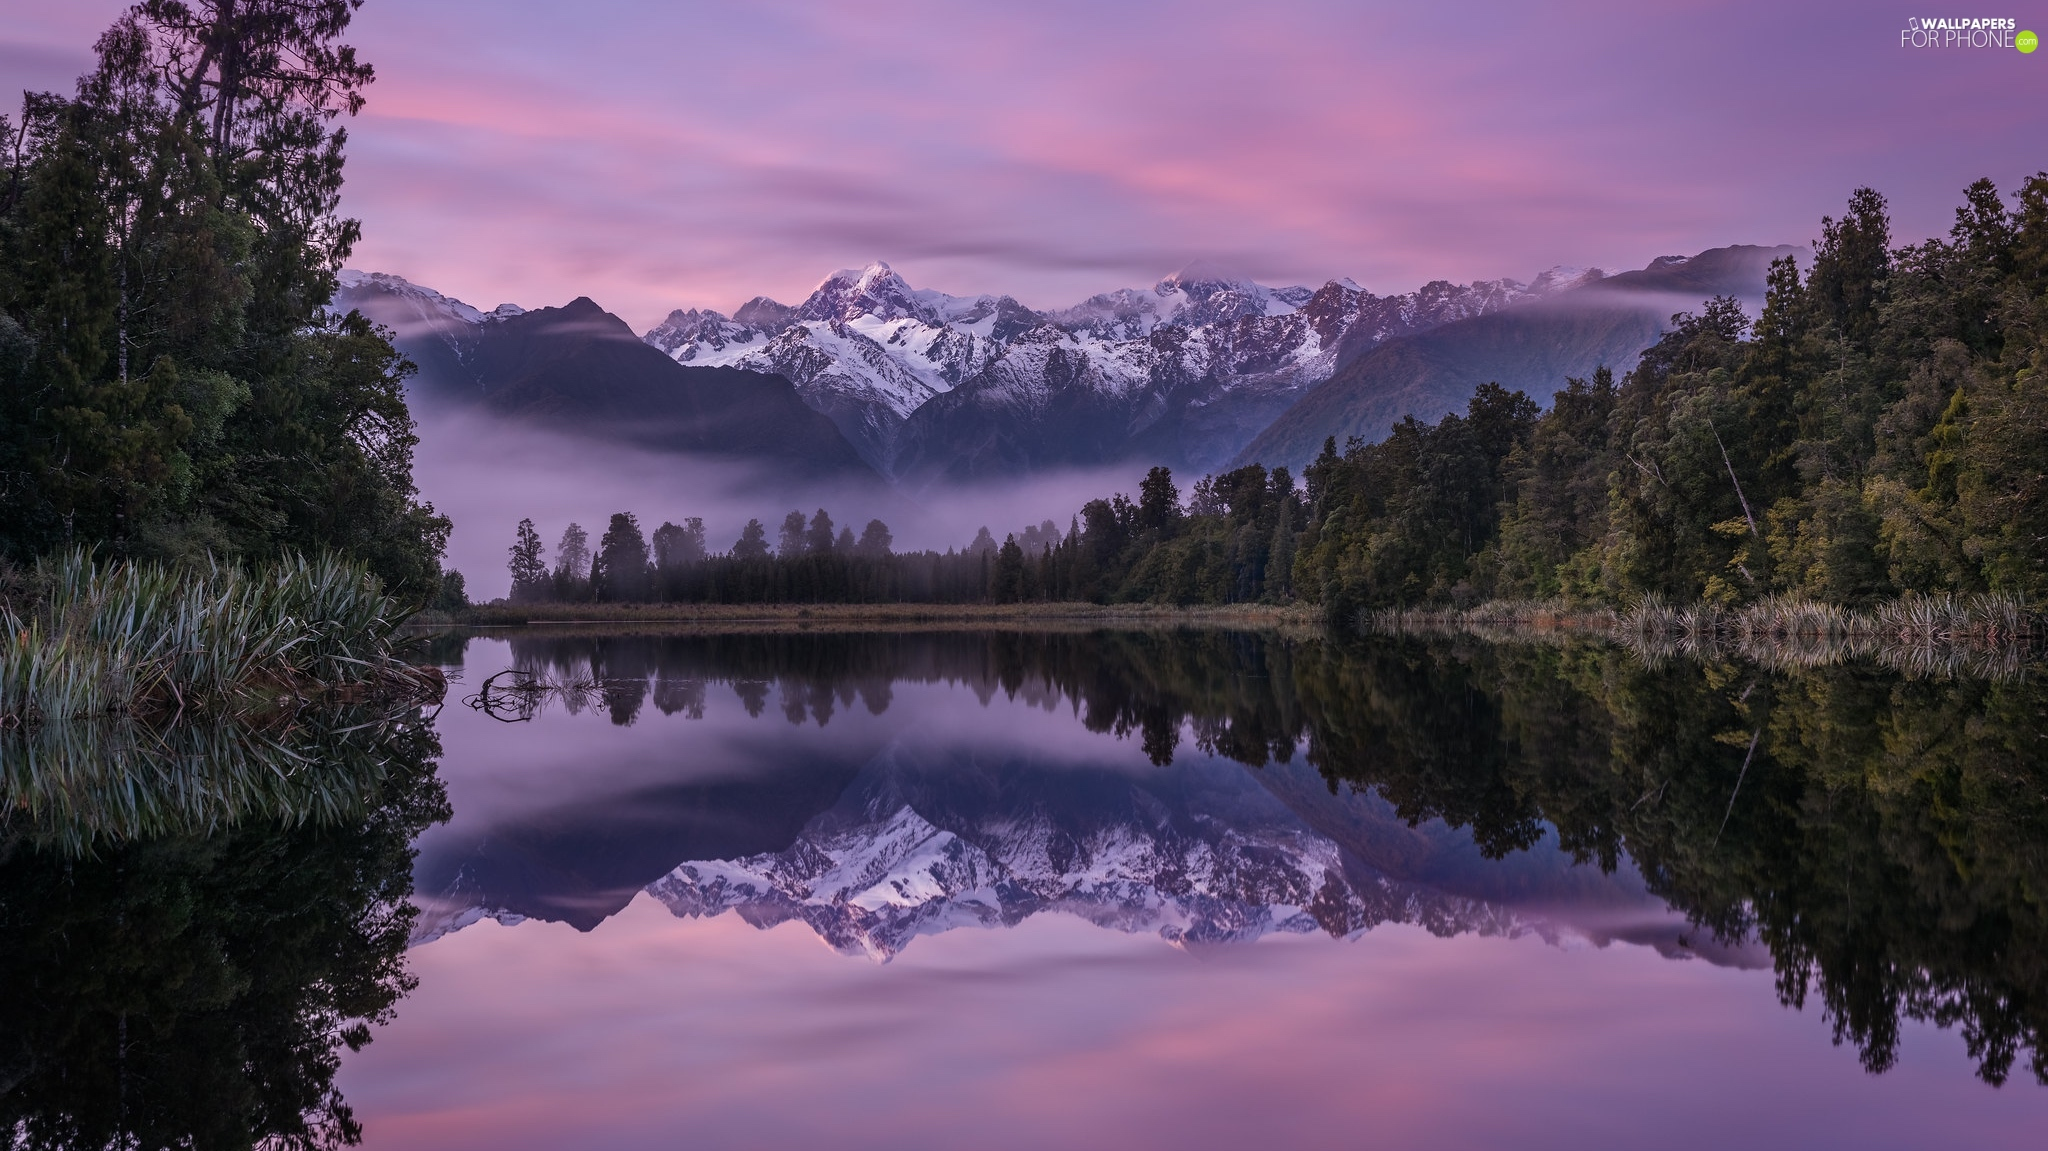 Mountains, Mount Cook National Park, reflection, trees, Mount Cook, New Zeland, Fog, Matheson Lake, viewes